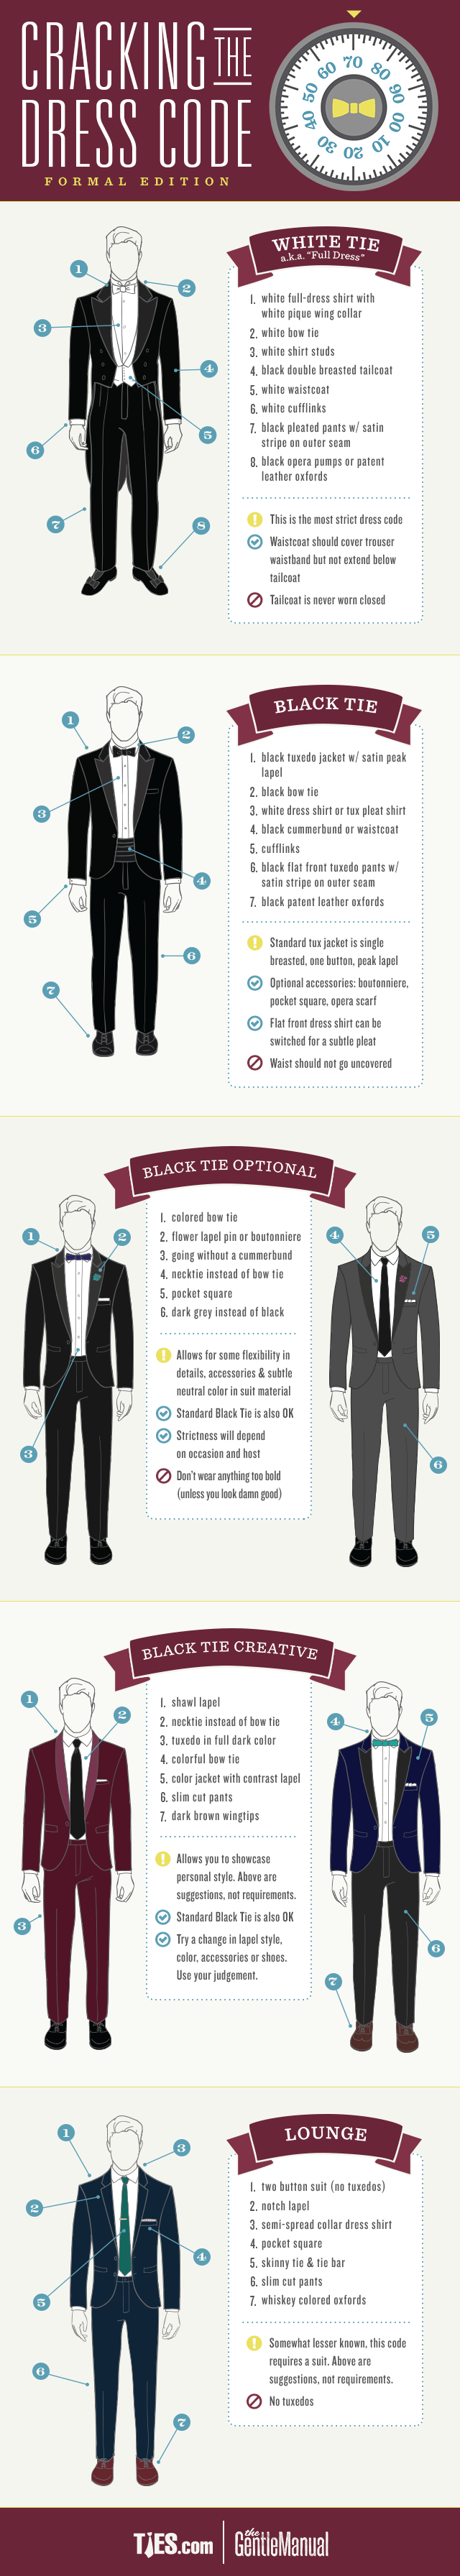 cracking-the-dress-code-the-formal-edition_52586061c6b58